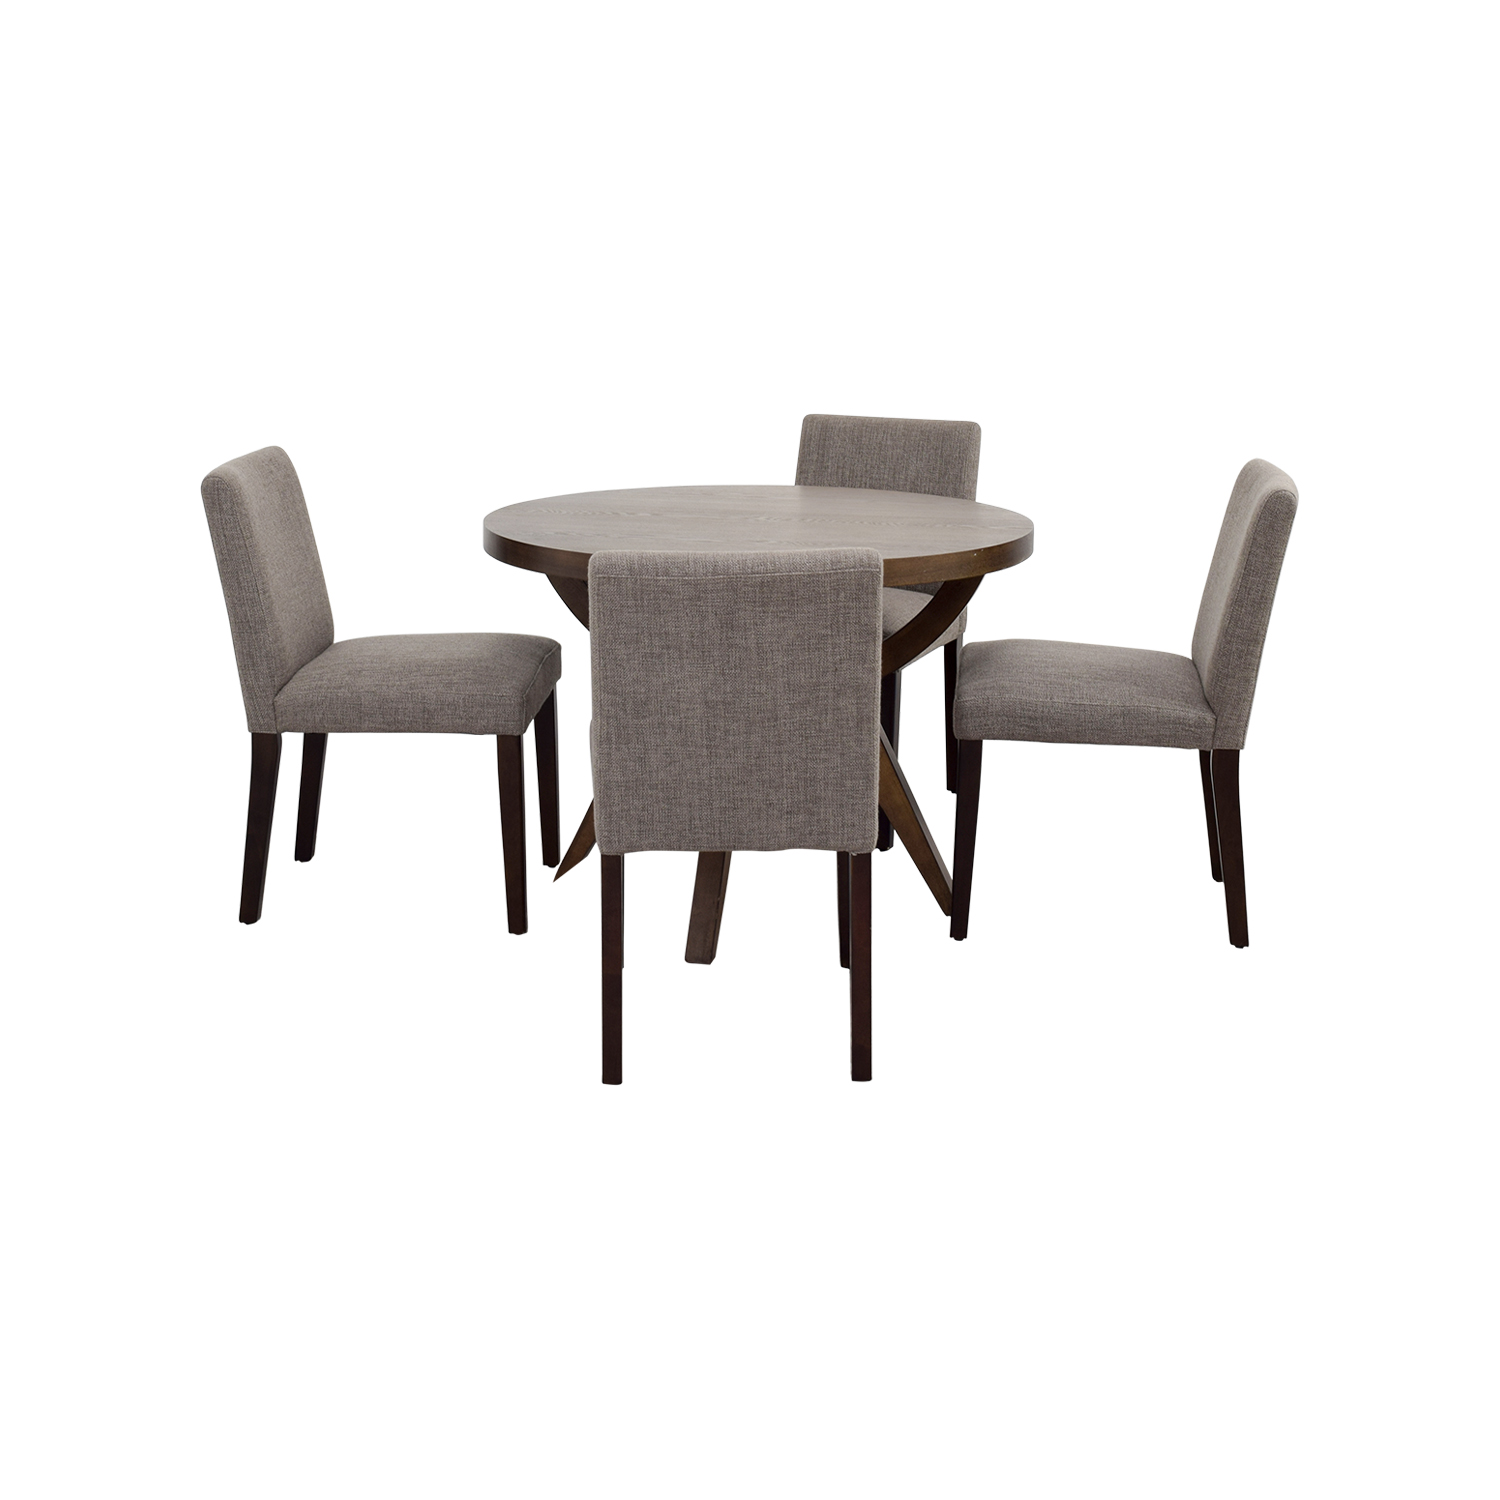 west elm chairs dining tolix chair yellow 51 off arc base pedestal table and